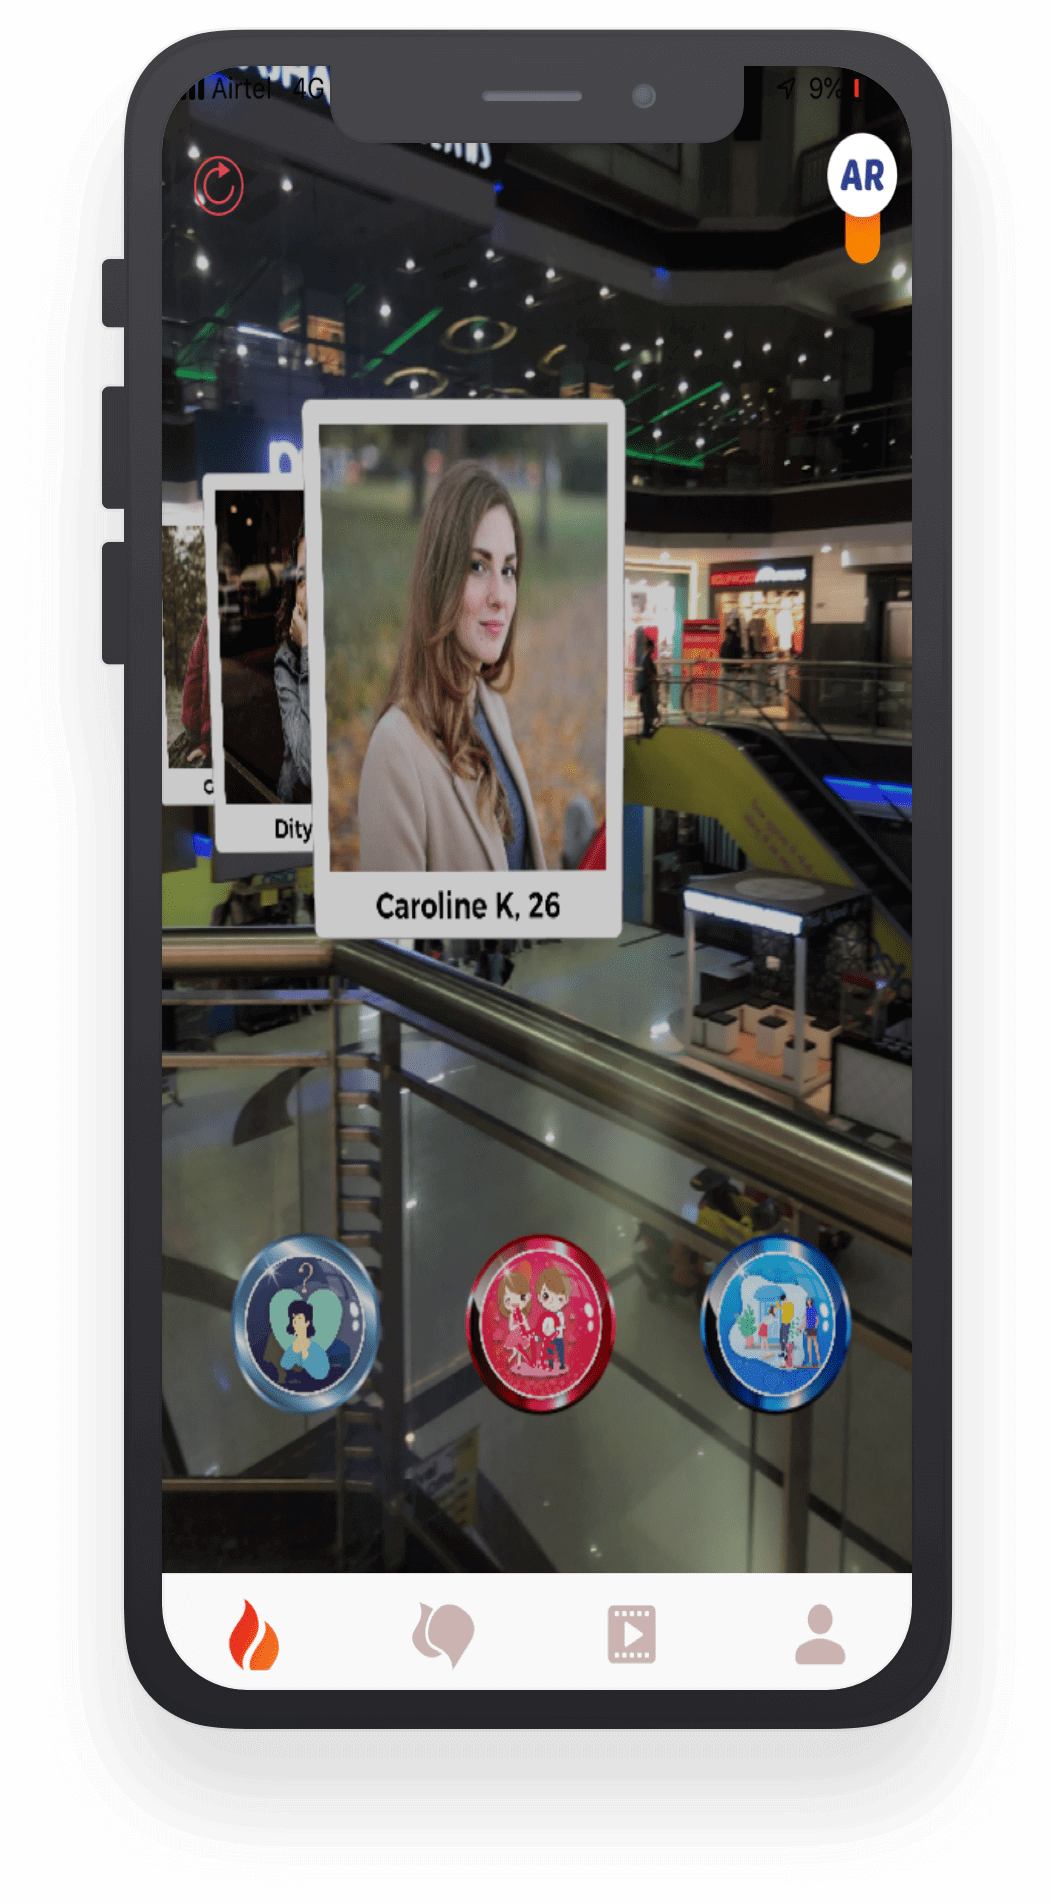 Find match and meet new people in real-time using AR Augmented Reality